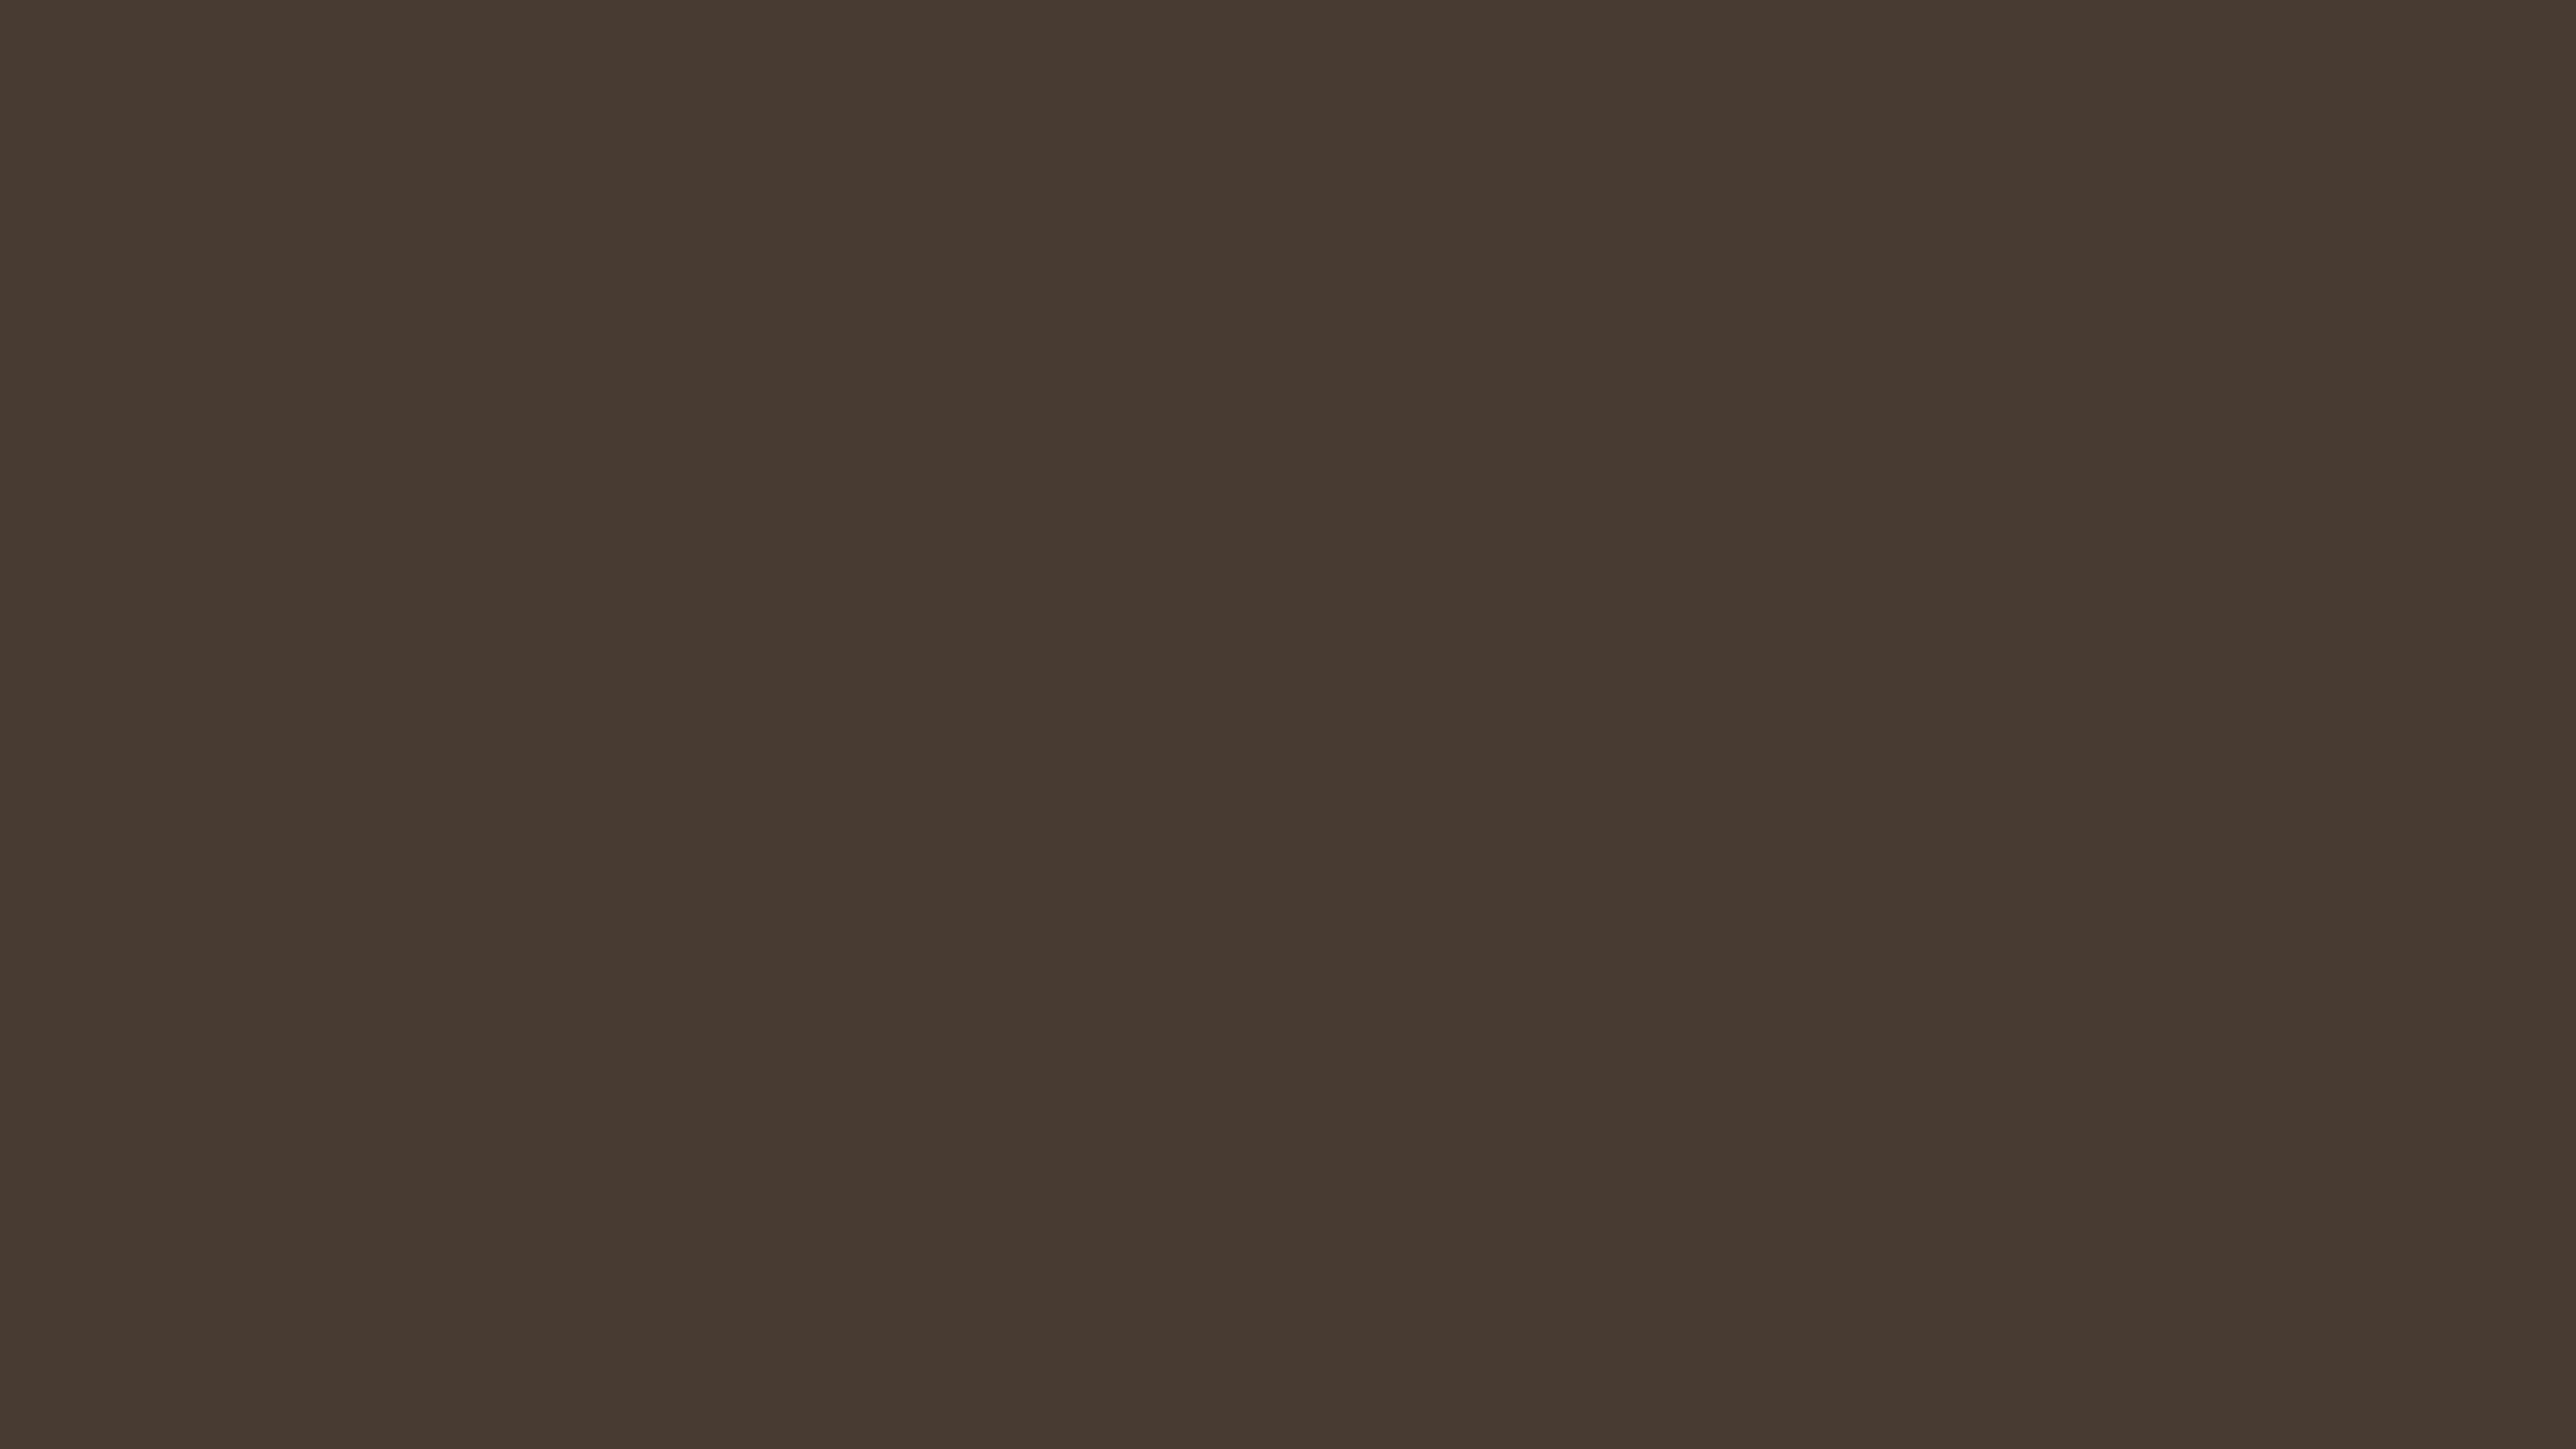 3840x2160 Taupe Solid Color Background